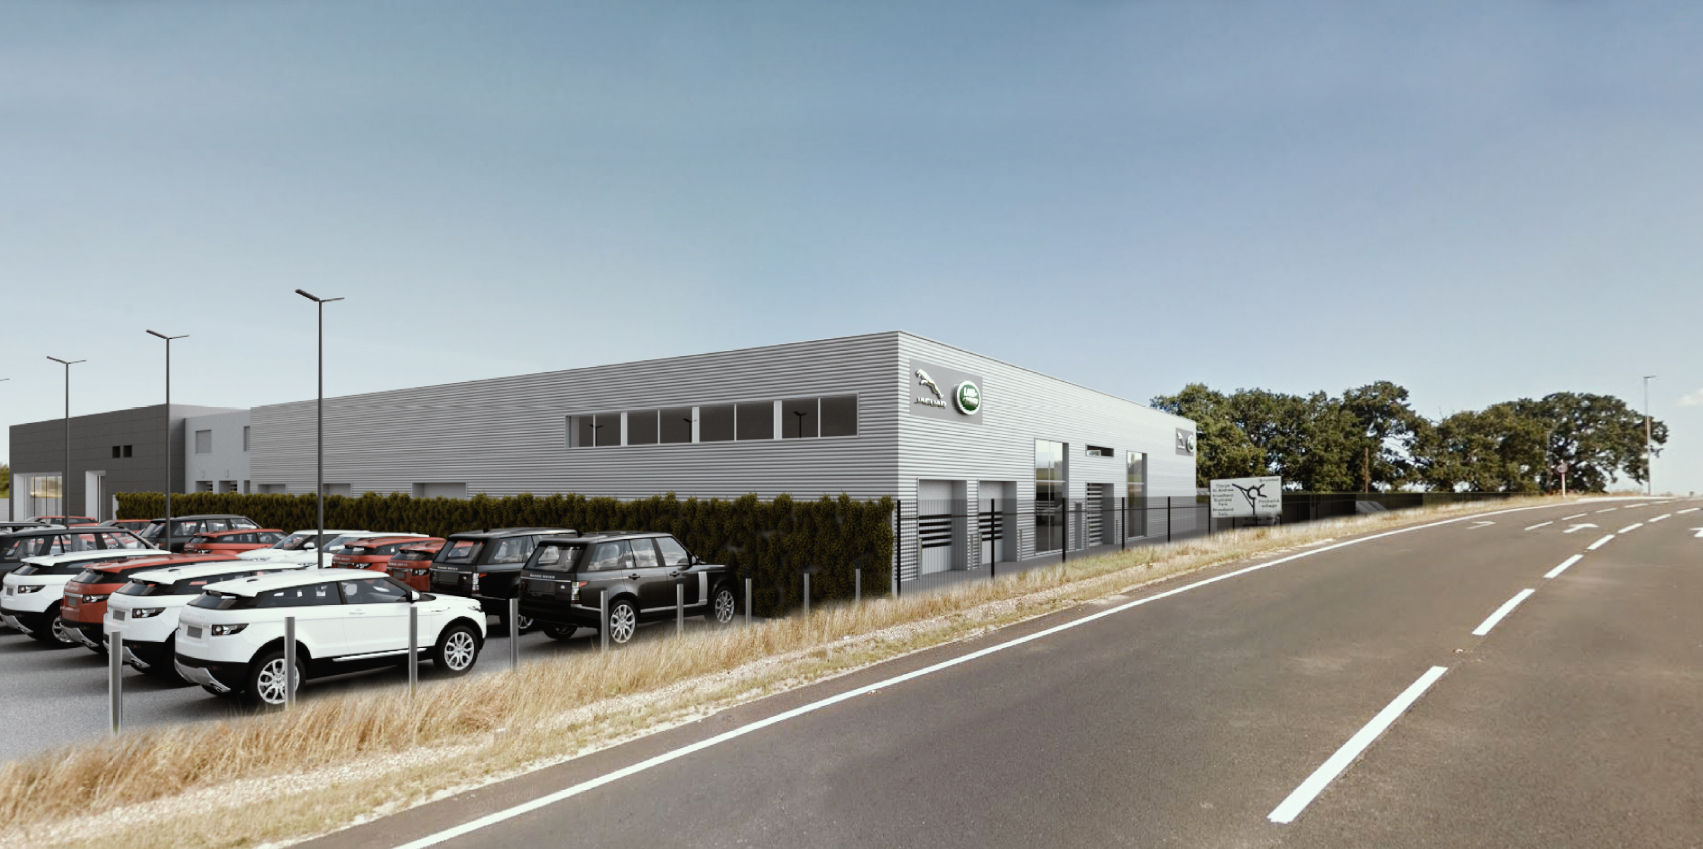 New Jaguar Land Rover Dealership to open at Broadland Gate